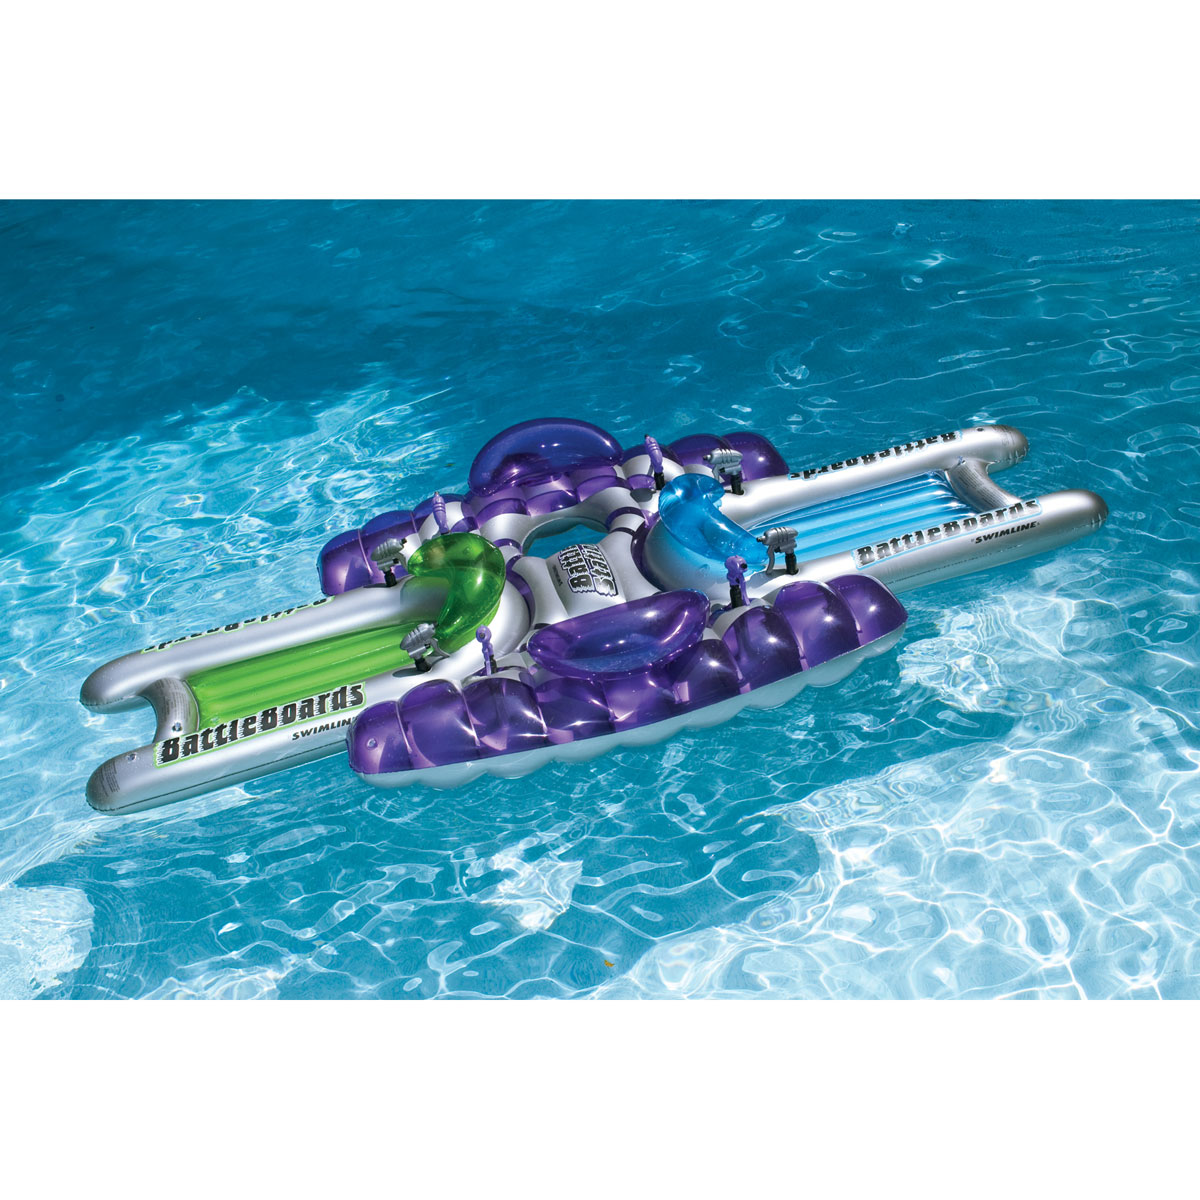 Battle Station Squirter Set Inflatable Swimming Pool Toy by Swimline